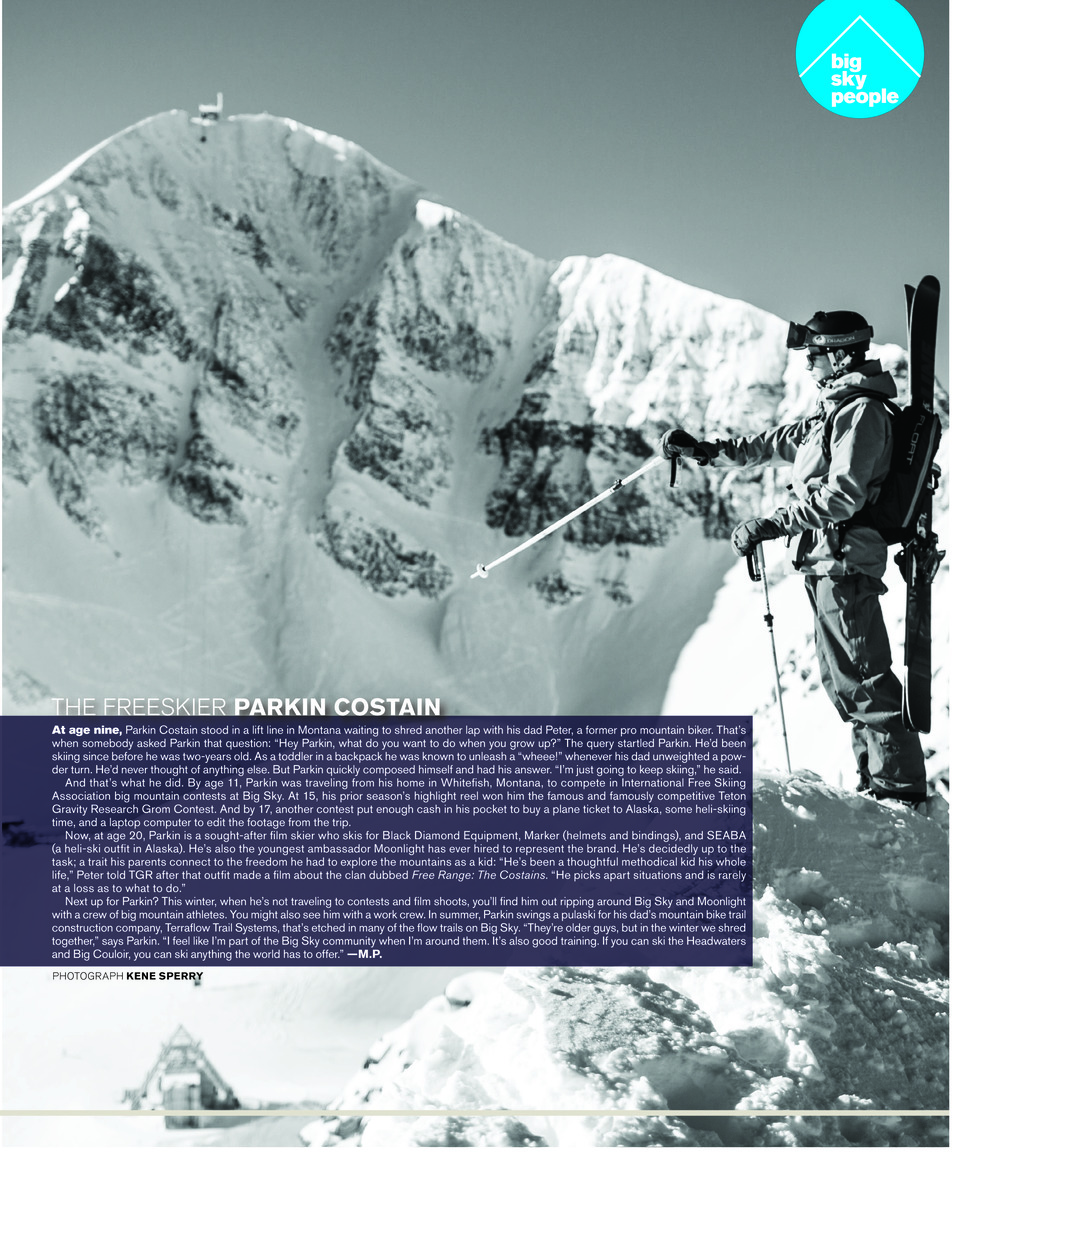 Page 49 of Big Sky People: Parkin Costain - The Freeskier